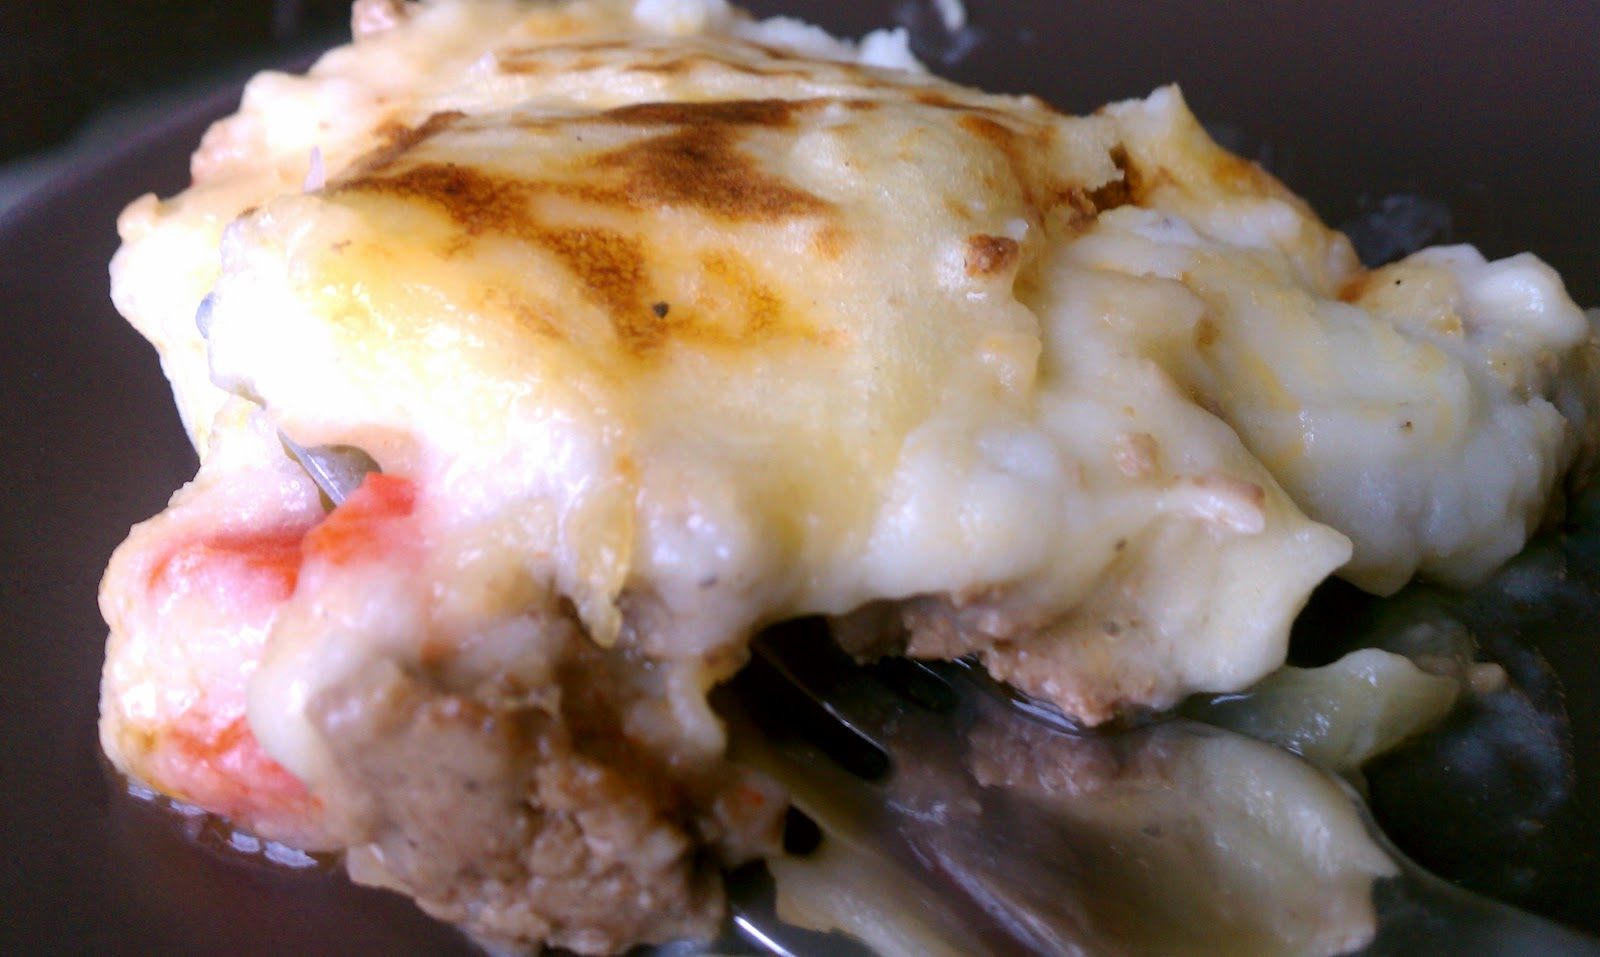 The Maternal Foodie: Non-traditional Shepherd's Pie